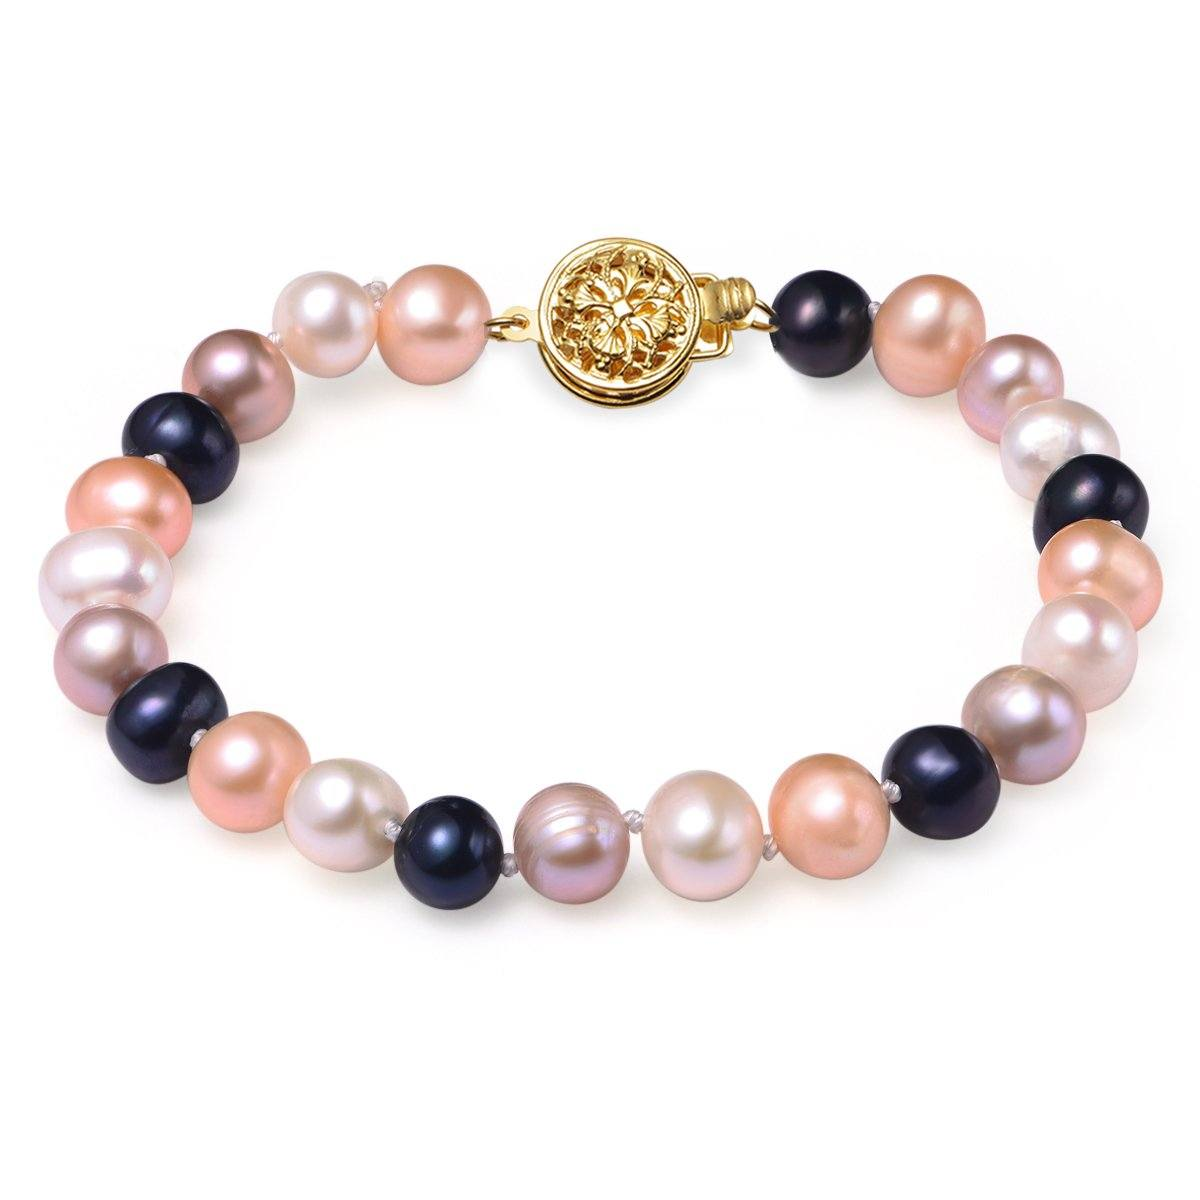 multi colored pearl bracelet 7-8 mm aaa cultured freshwater pearls with 14k solid yellow gold round filigree